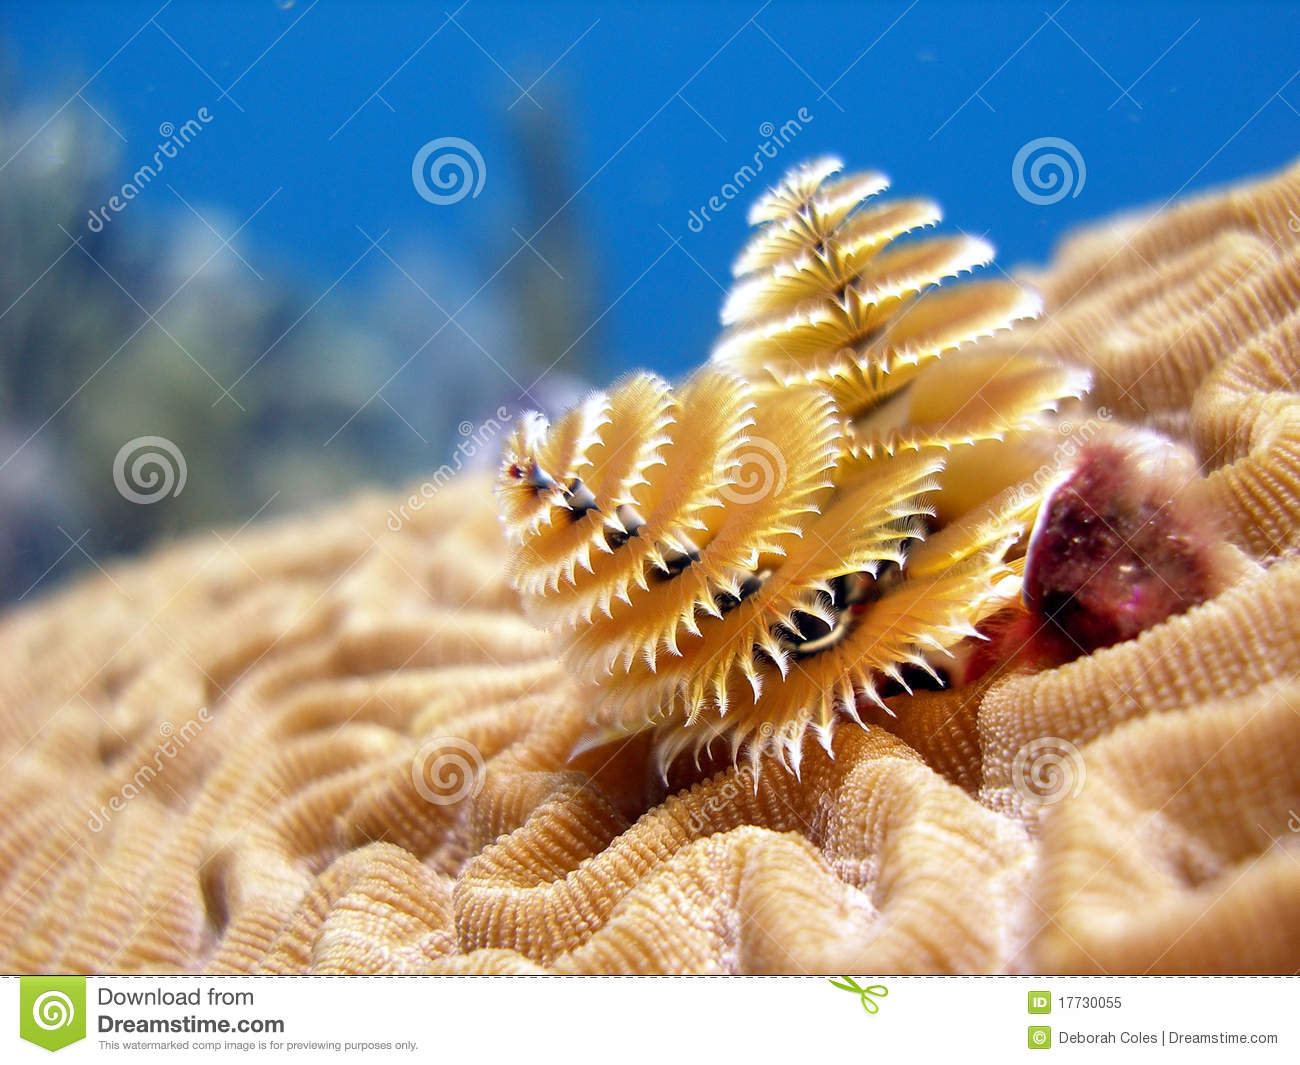 Christmas tree tube worms stock image of dive